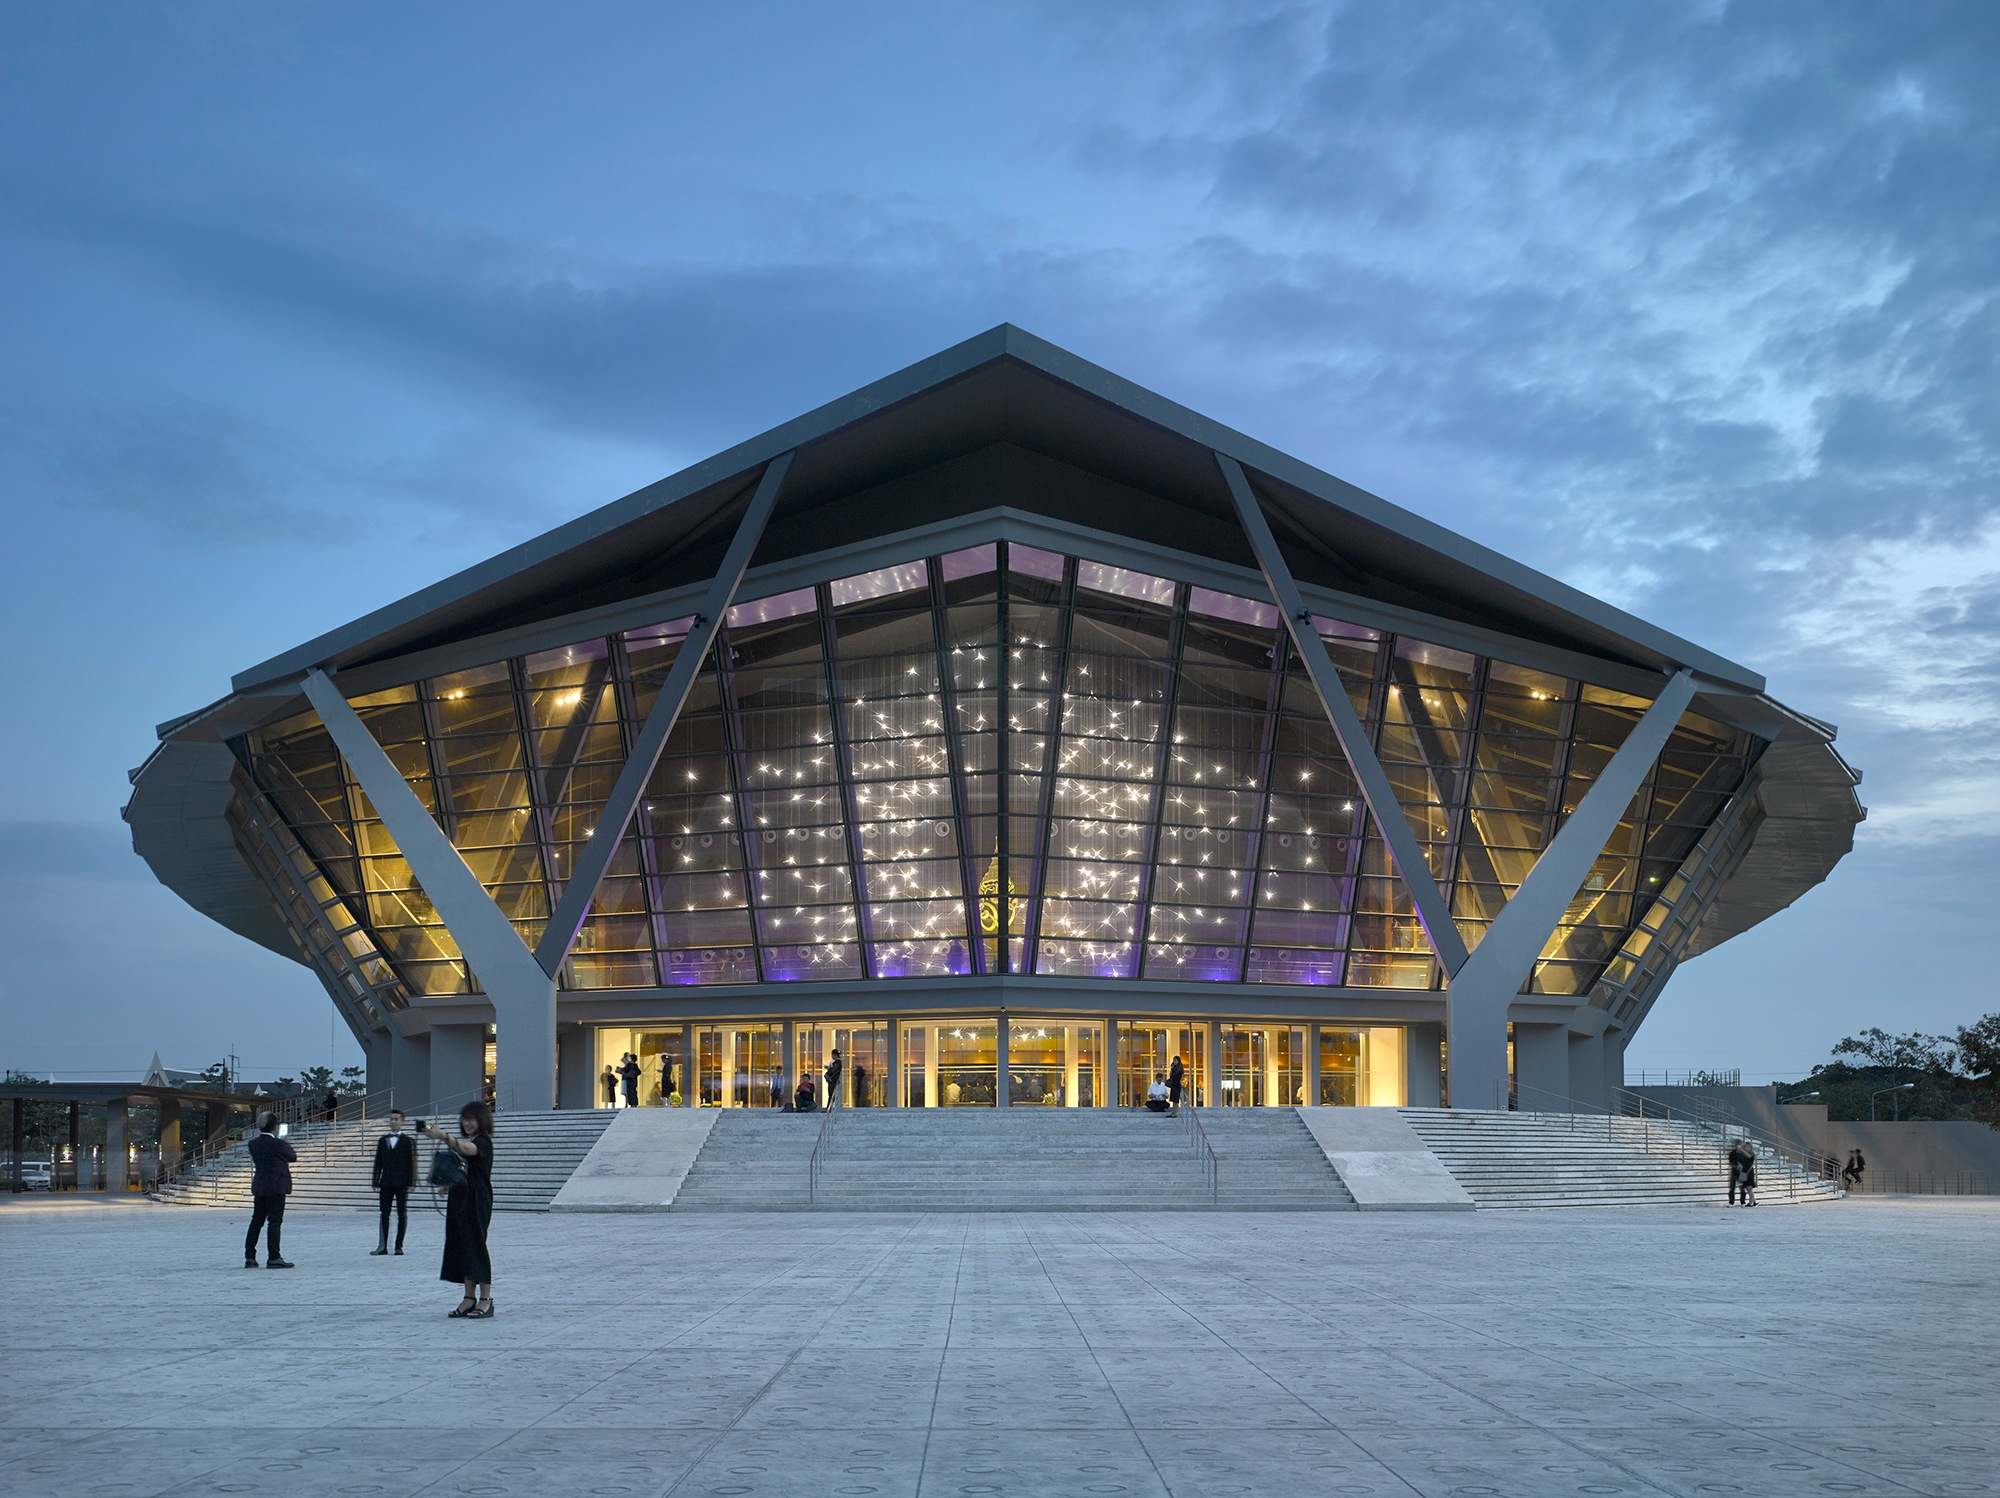 Prince Mahidol Hall at Mahidol University in Thailand. Photography courtesy of Lasvit.